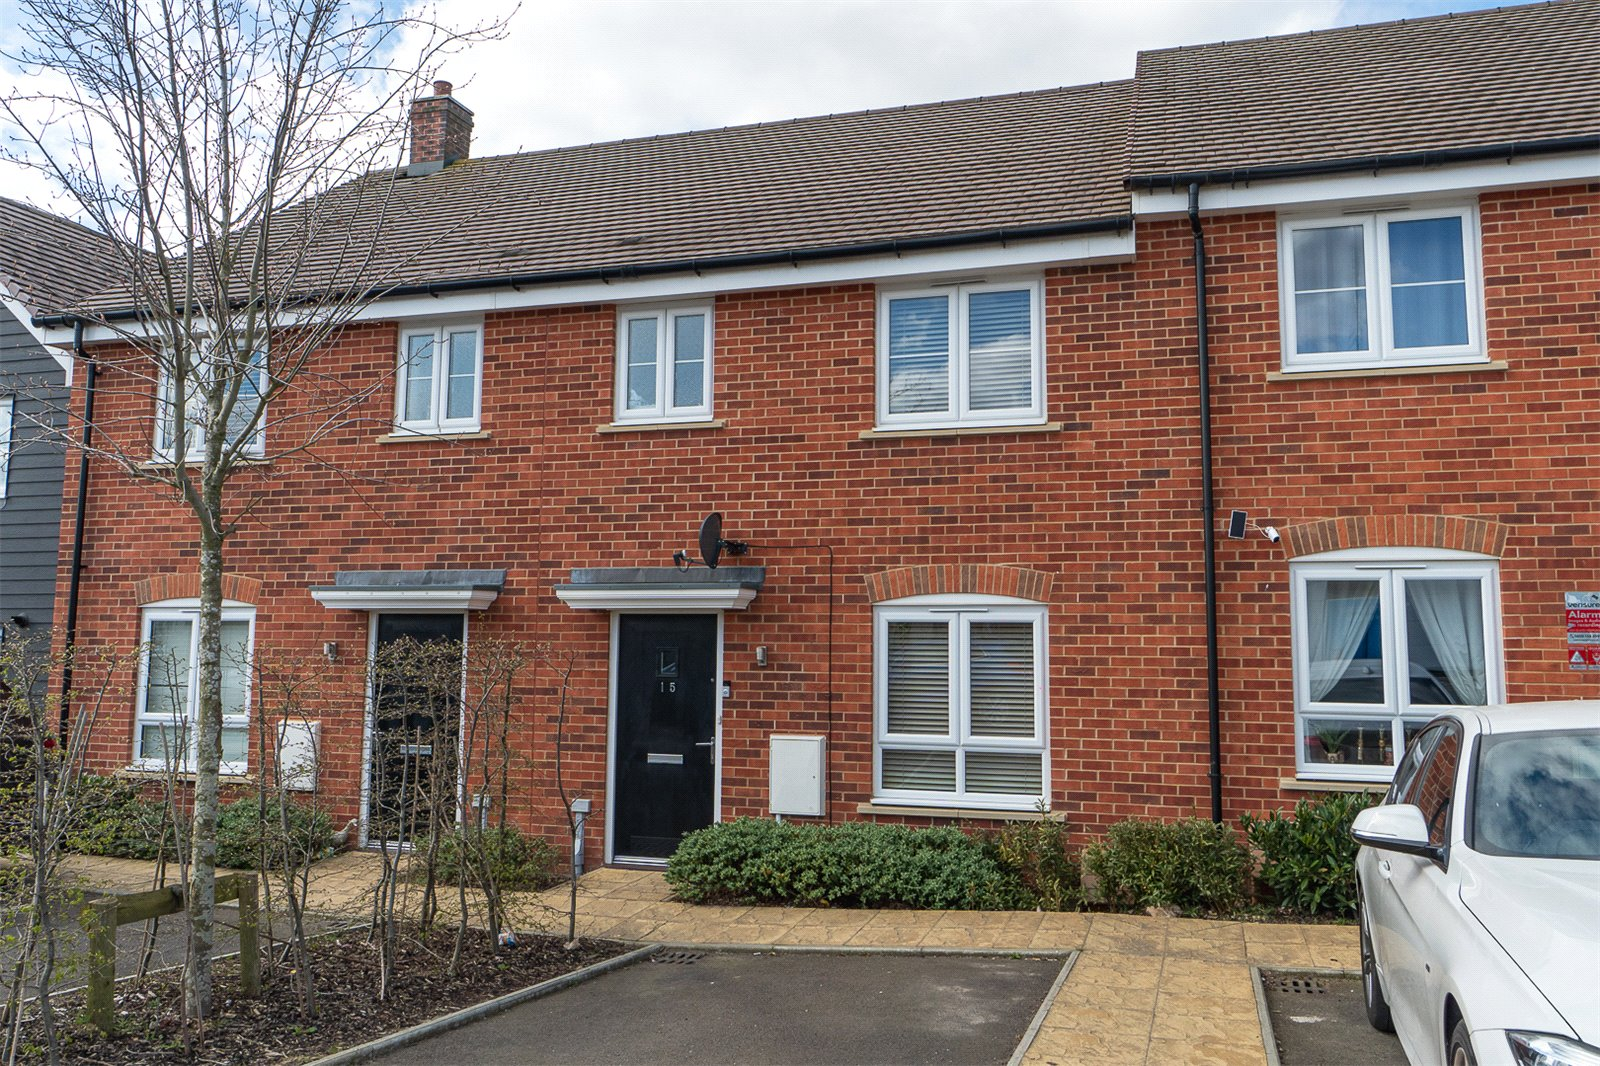 3 bed house for sale in Laight Road, Maidstone, ME17